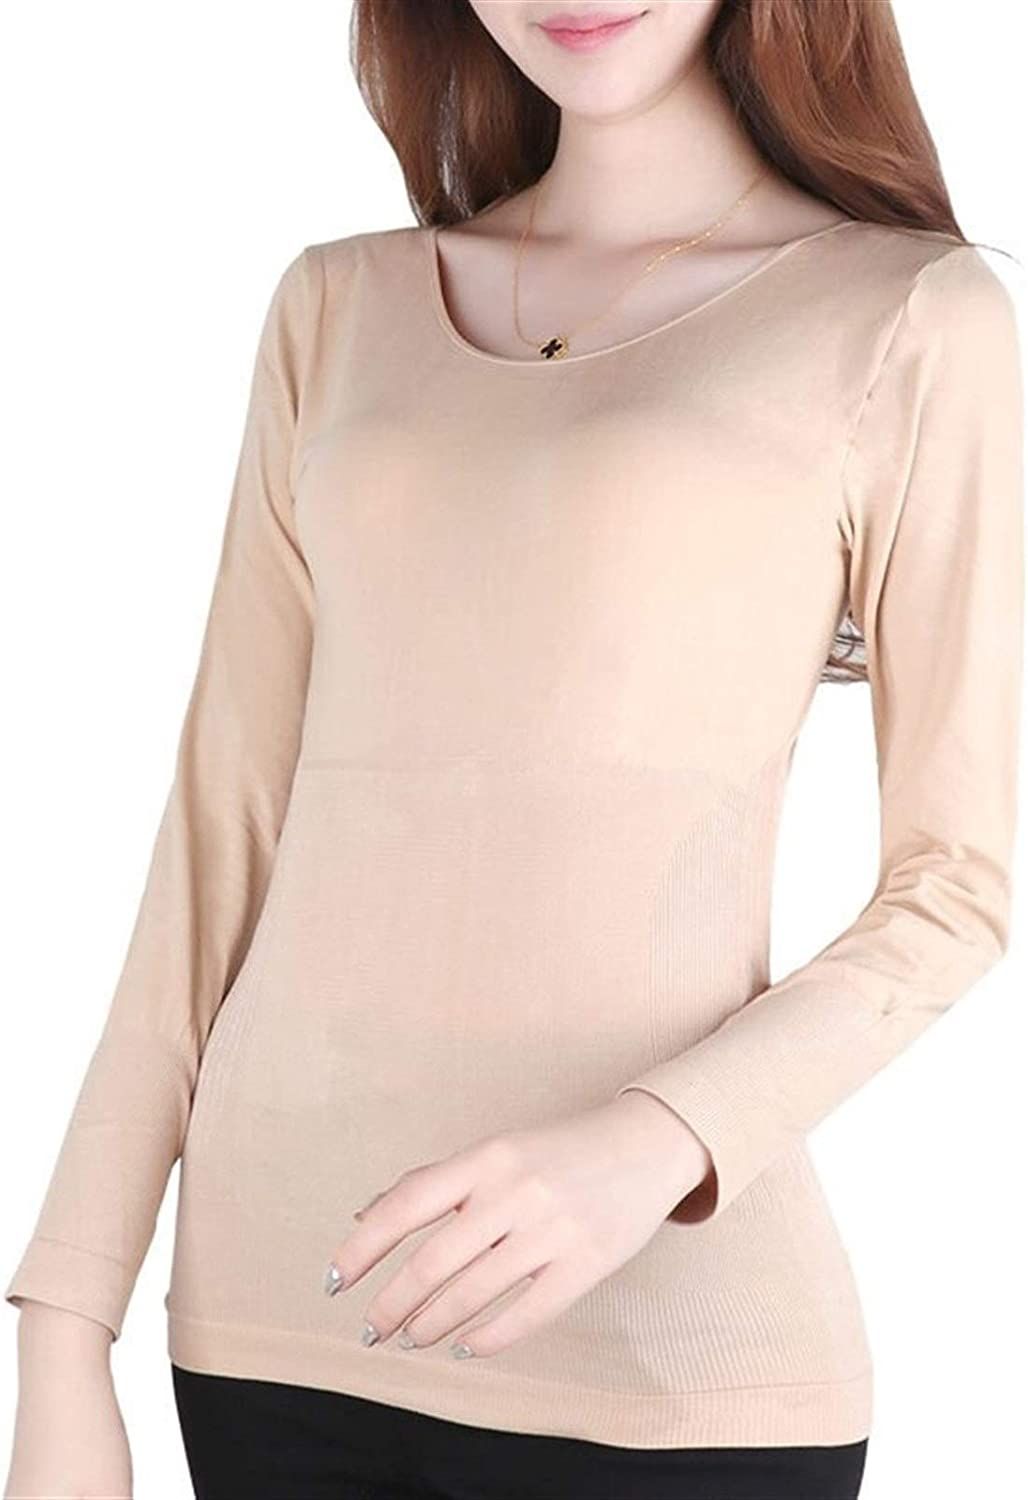 QWERBAM Abdomen Tunic Sleeved Thermal Underwear Slimming Clothes Postpartum Low Warm T-Shirt Lady Spring Winter Corset Women (Color : Blue, Size : One Size)